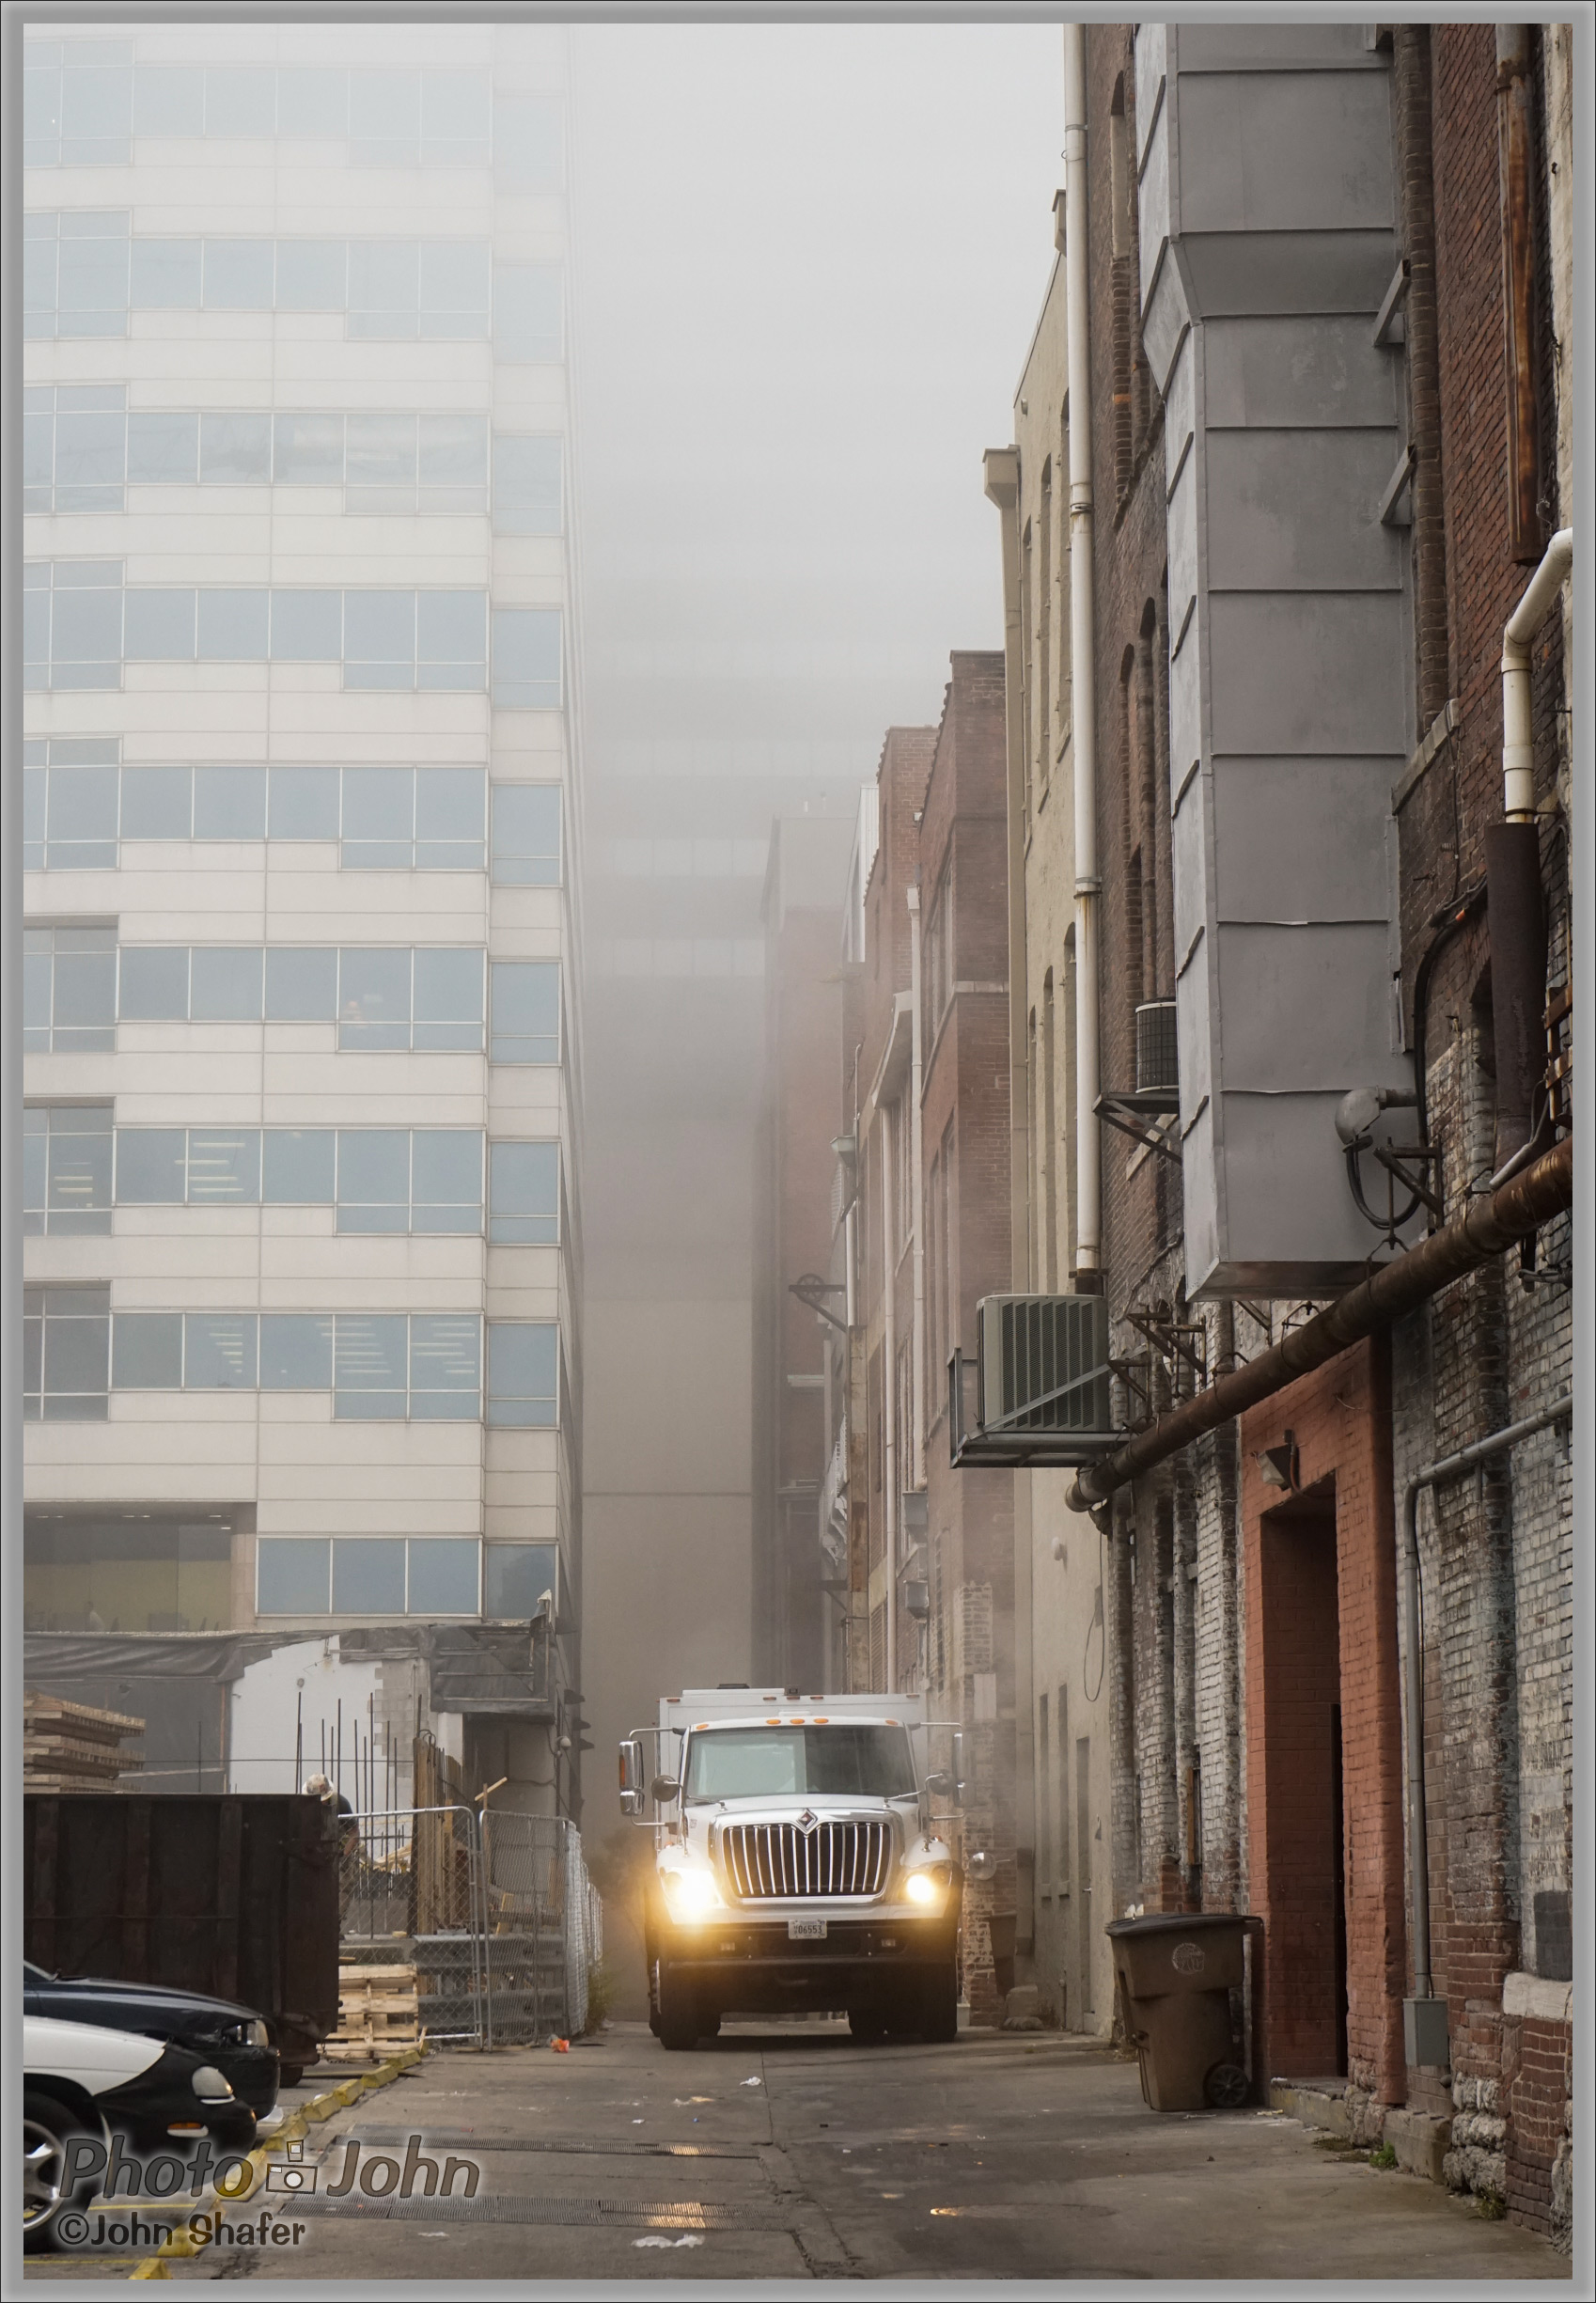 Sony Alpha A7 - Foggy Alley - Nashville, TN